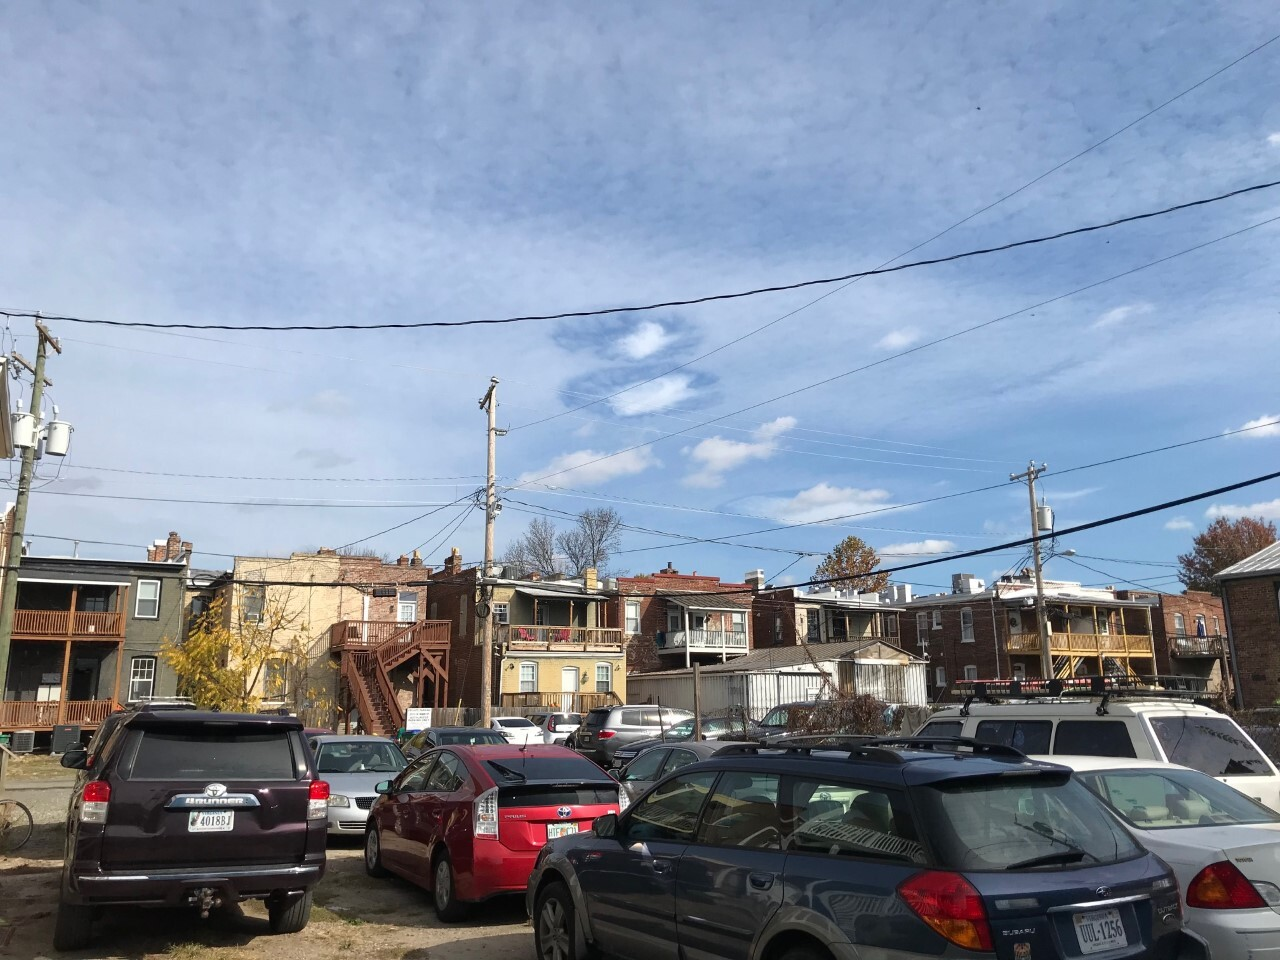 Photos: 'Hole punch clouds' appear over Central Virginia Saturday